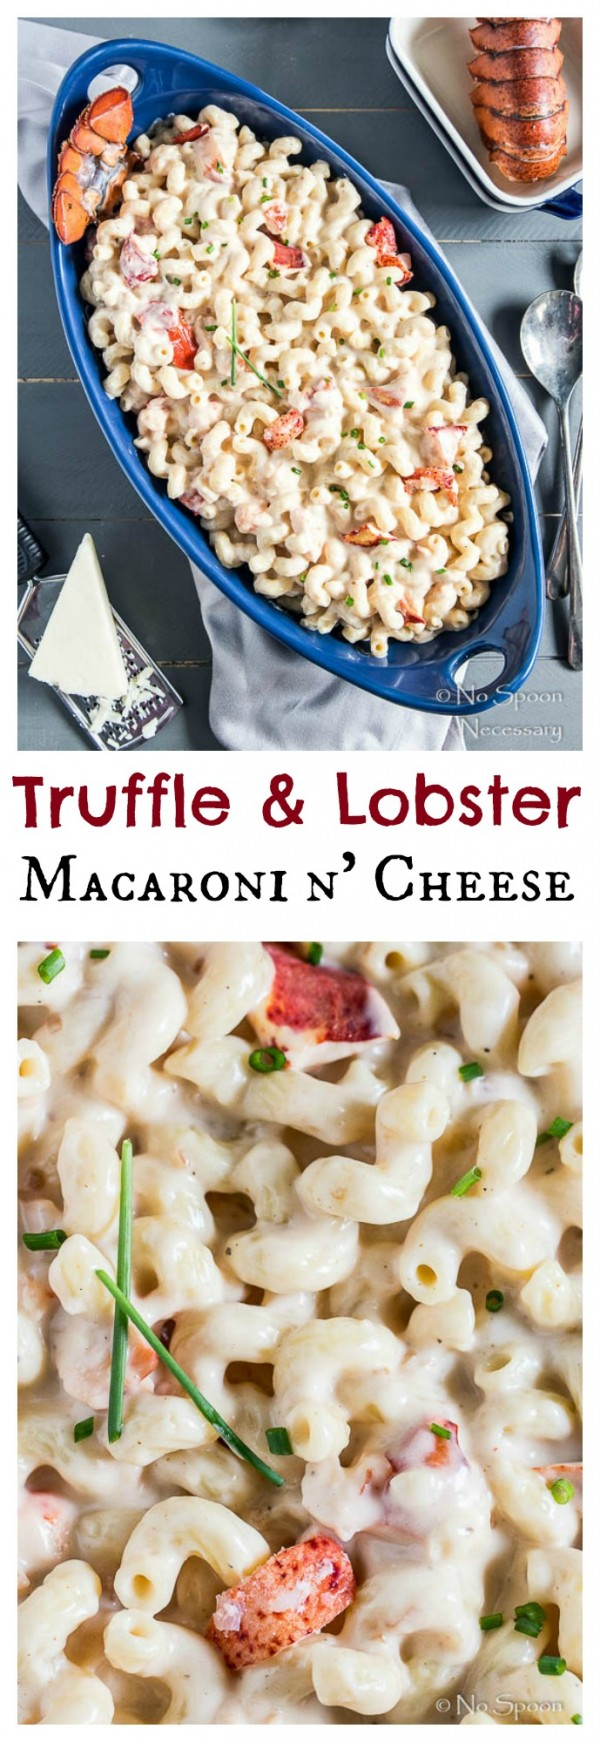 Truffle Lobster Macaroni n' Cheese by Cheyanne Holzworth-Bany | Epicurious Community Table